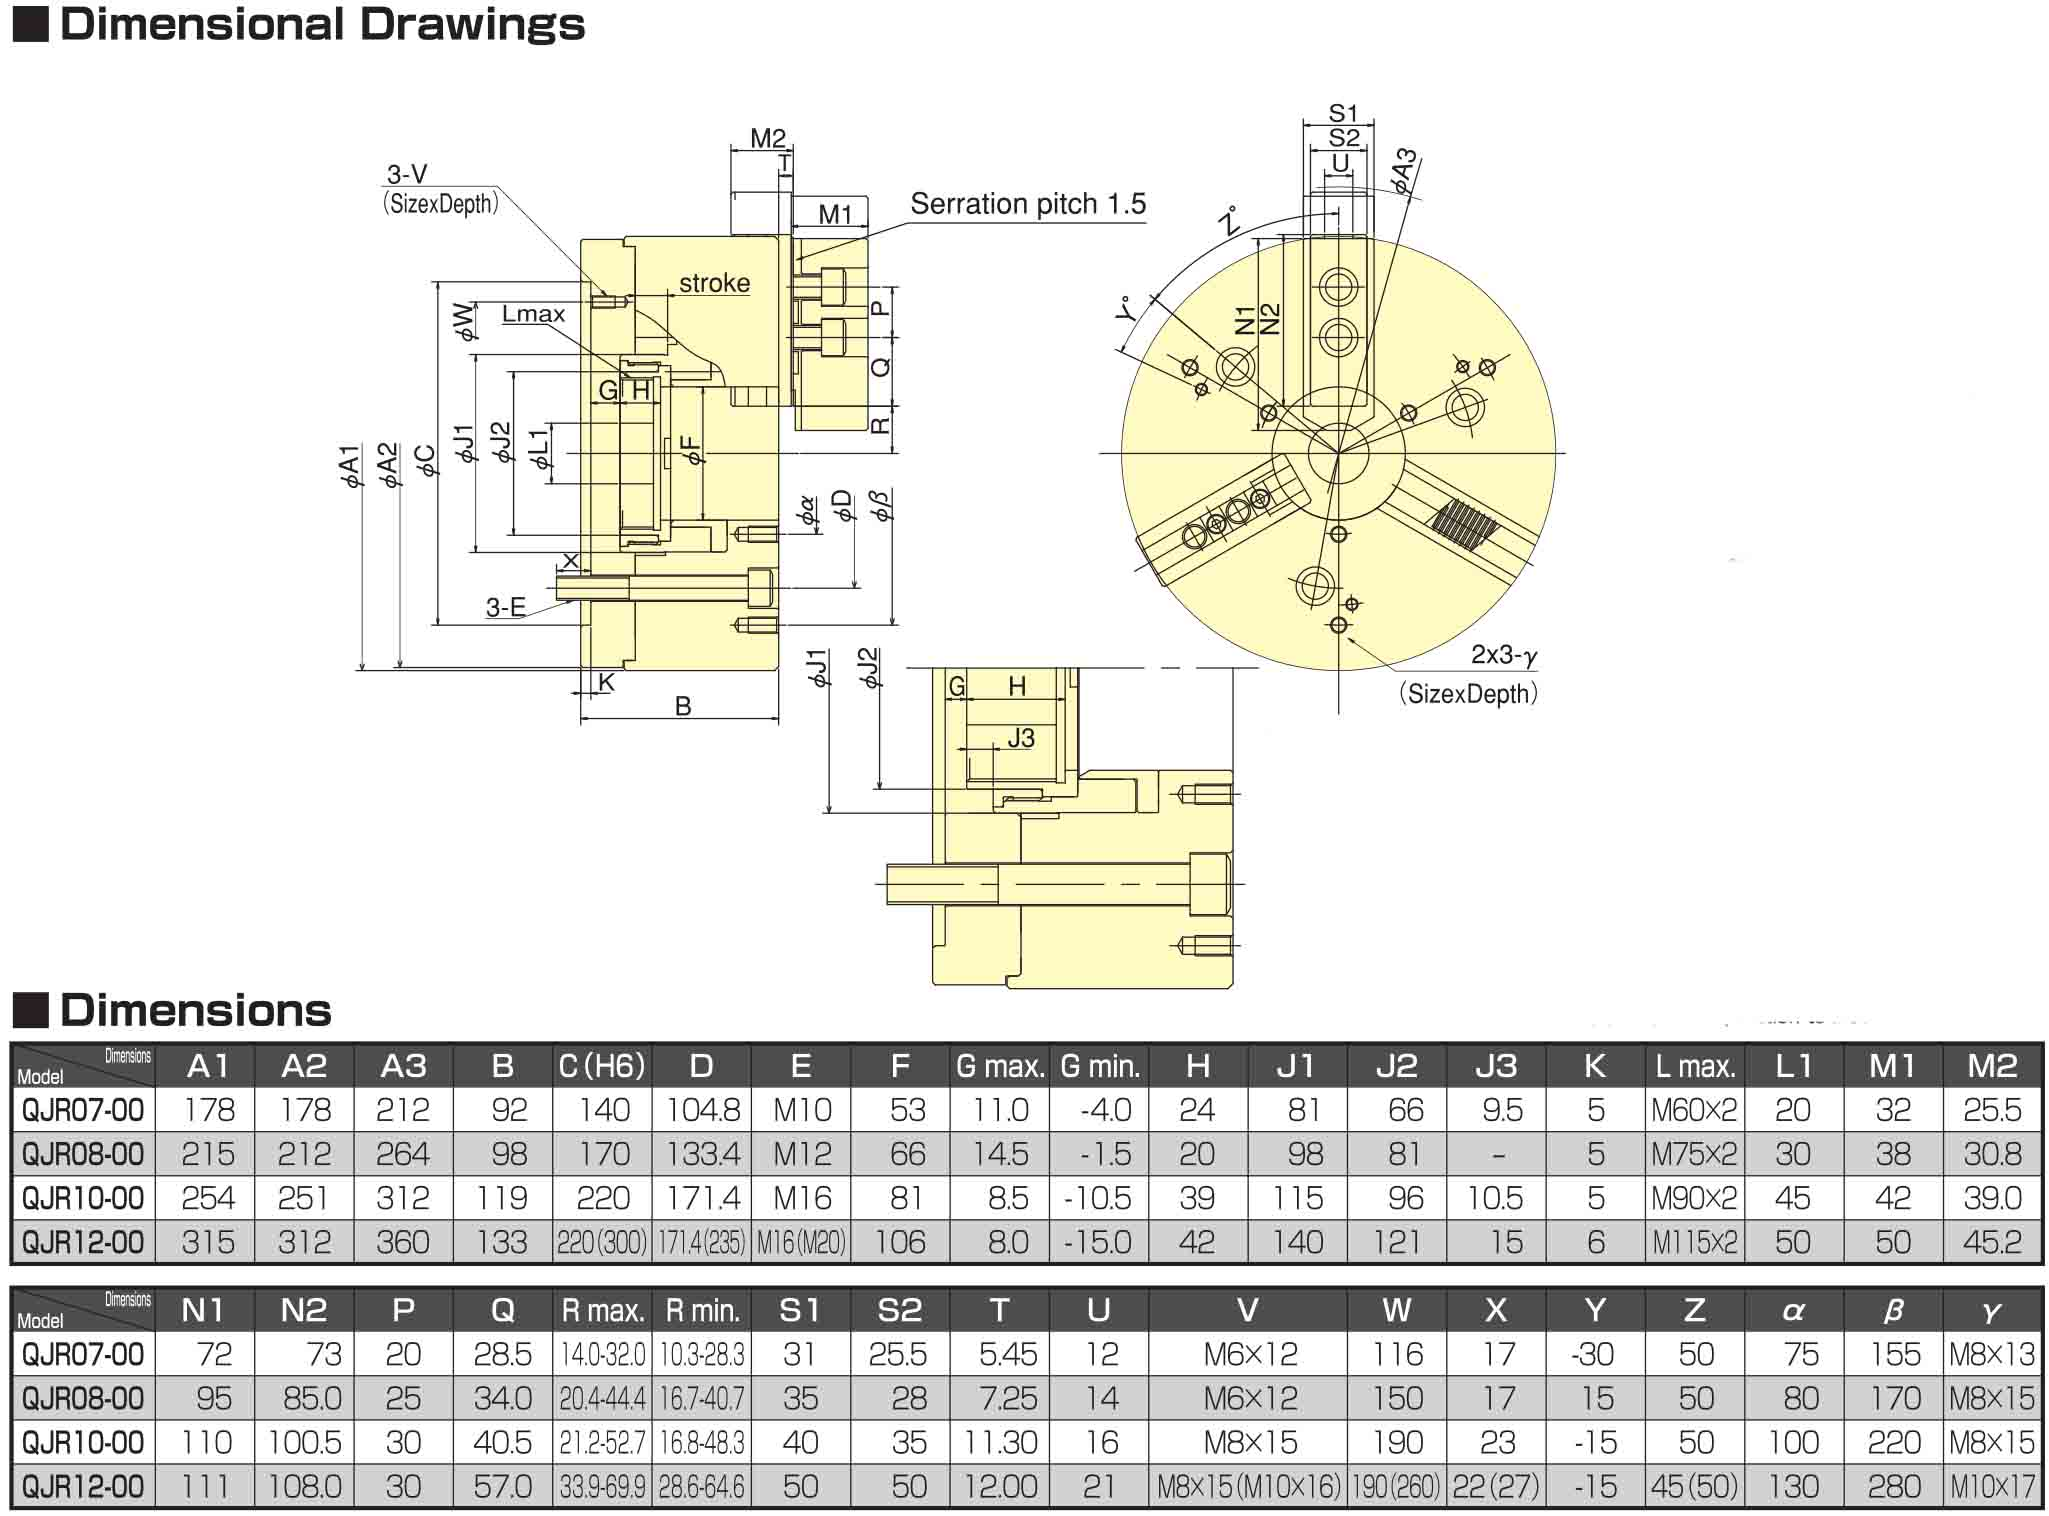 Kitagawa QJR08 Quick Jaw Replacement Chuck Dimensional Drawings